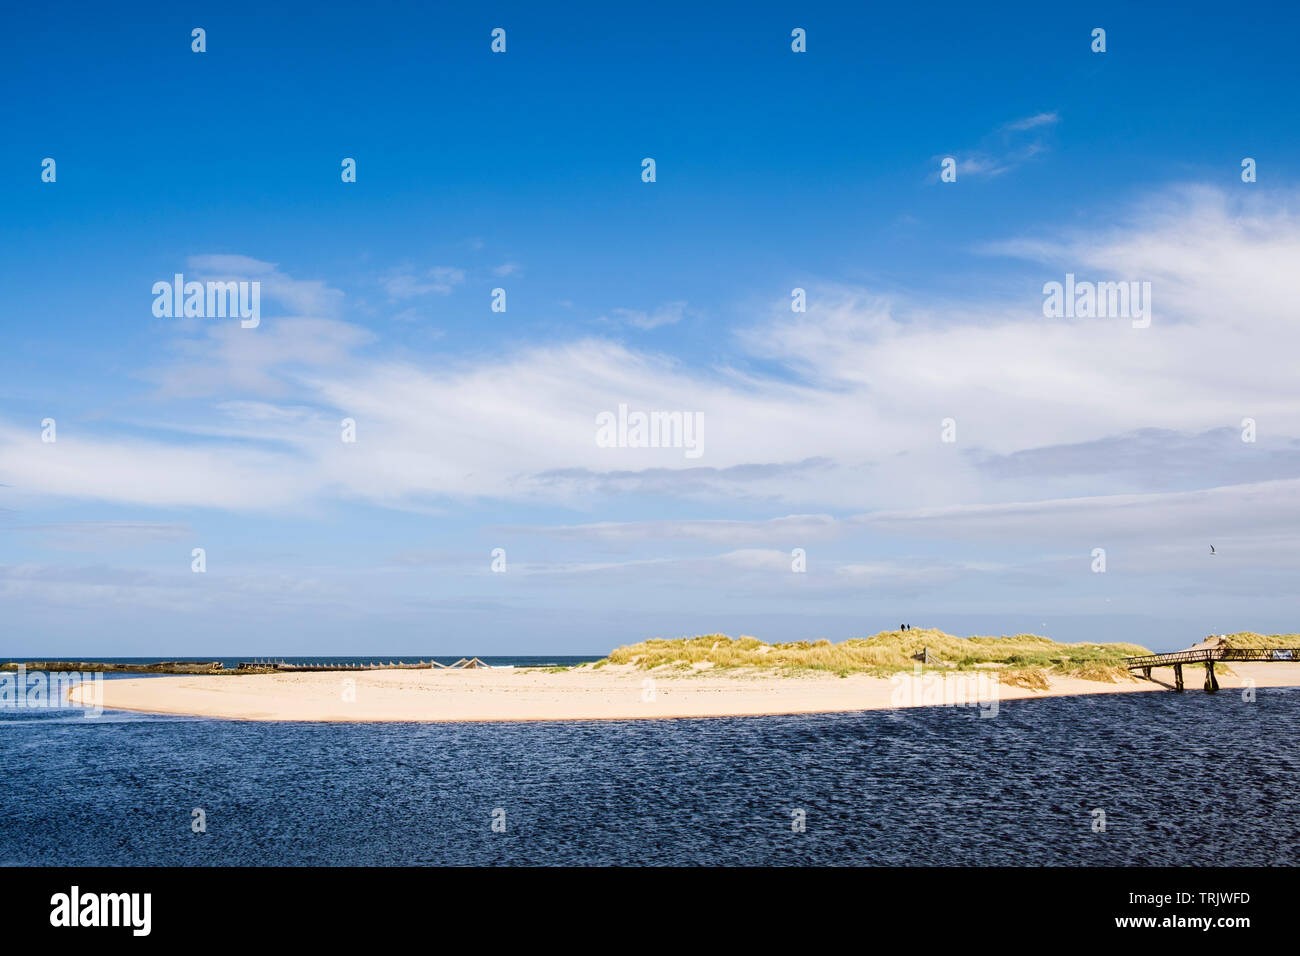 View to sandy East beach and sand dunes across Lossie River mouth from seafront on Moray Firth coast. Lossiemouth, Moray, Scotland, UK, Britain - Stock Image